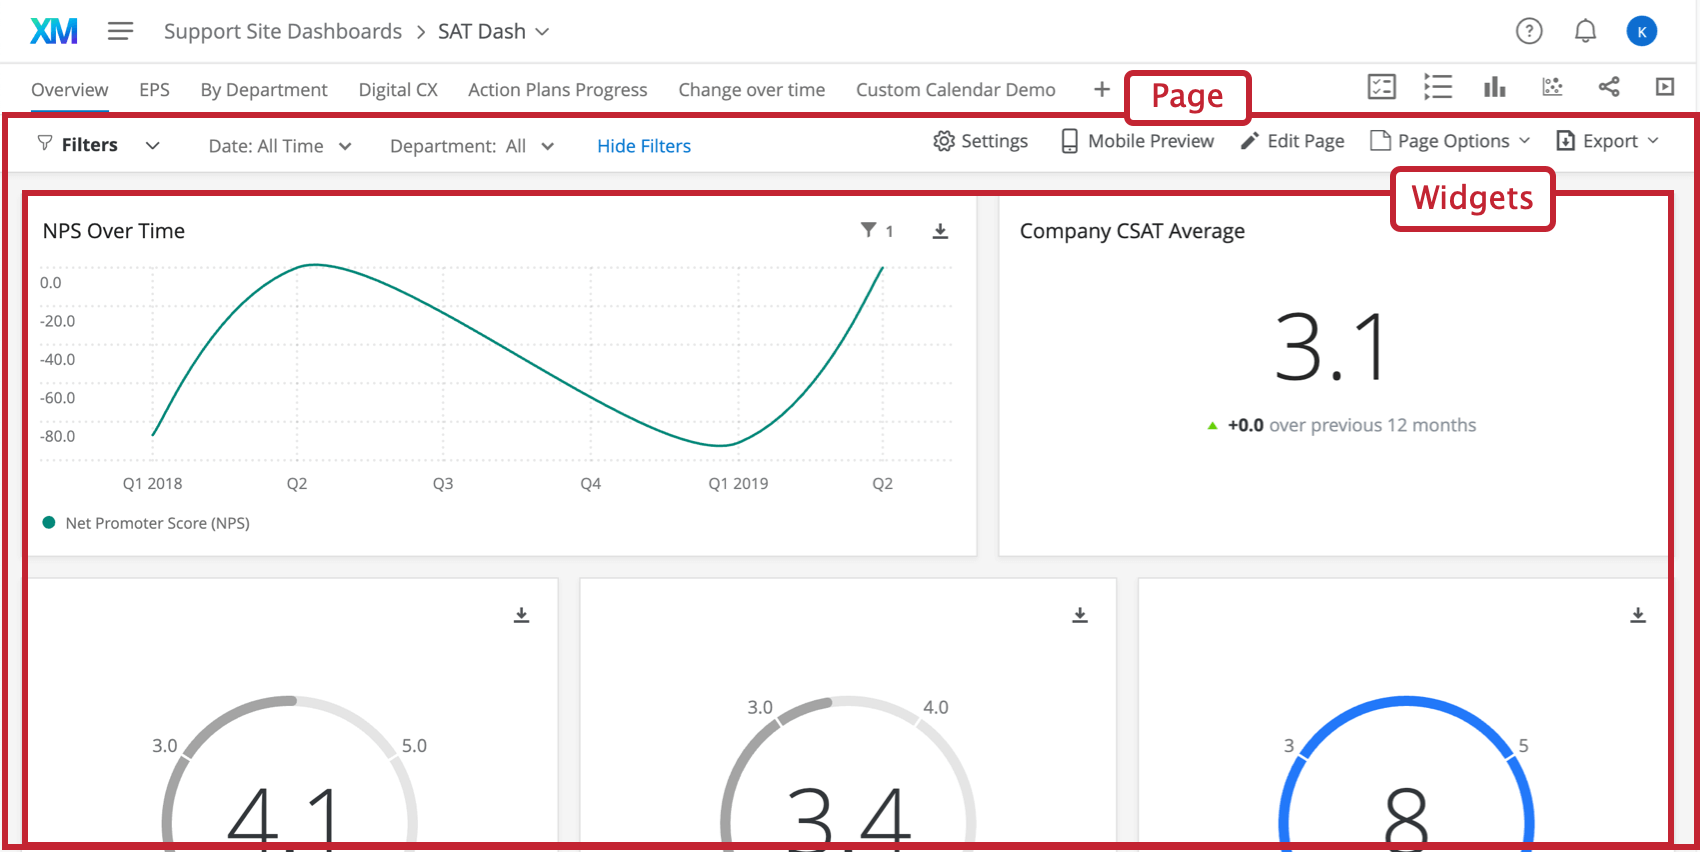 A screenshot of a customized dashboard. The pages are listed along the top, where you can navigate between them. The widgets are the different charts and graphs on the page